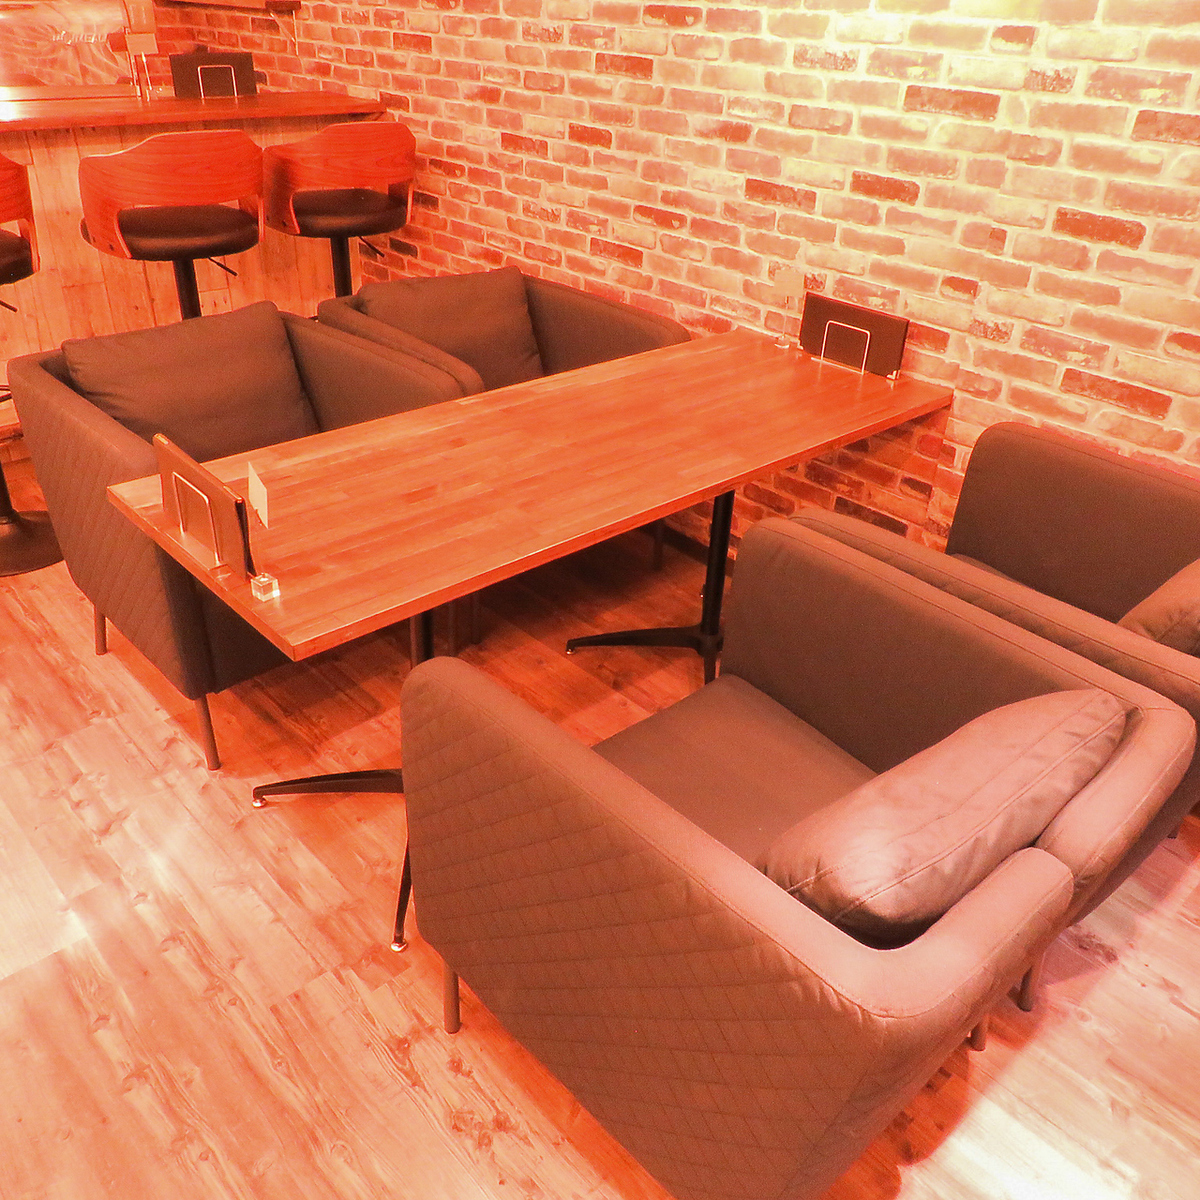 Recommended for girls' association sofa seat for one seat only ♪ As a popular seat, reservation is ahead of time!